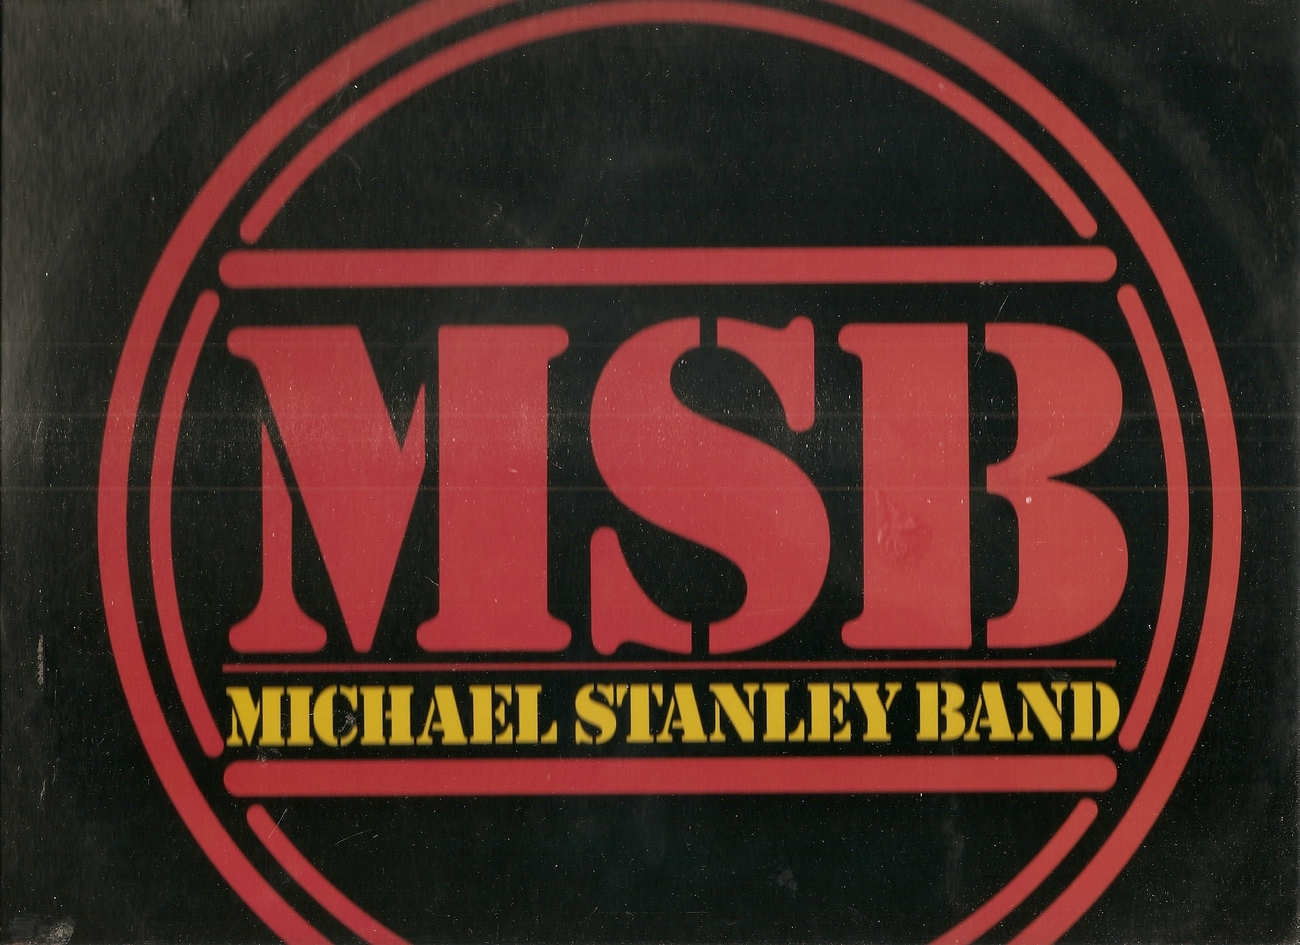 LP--Michael Stanley Band - Msb